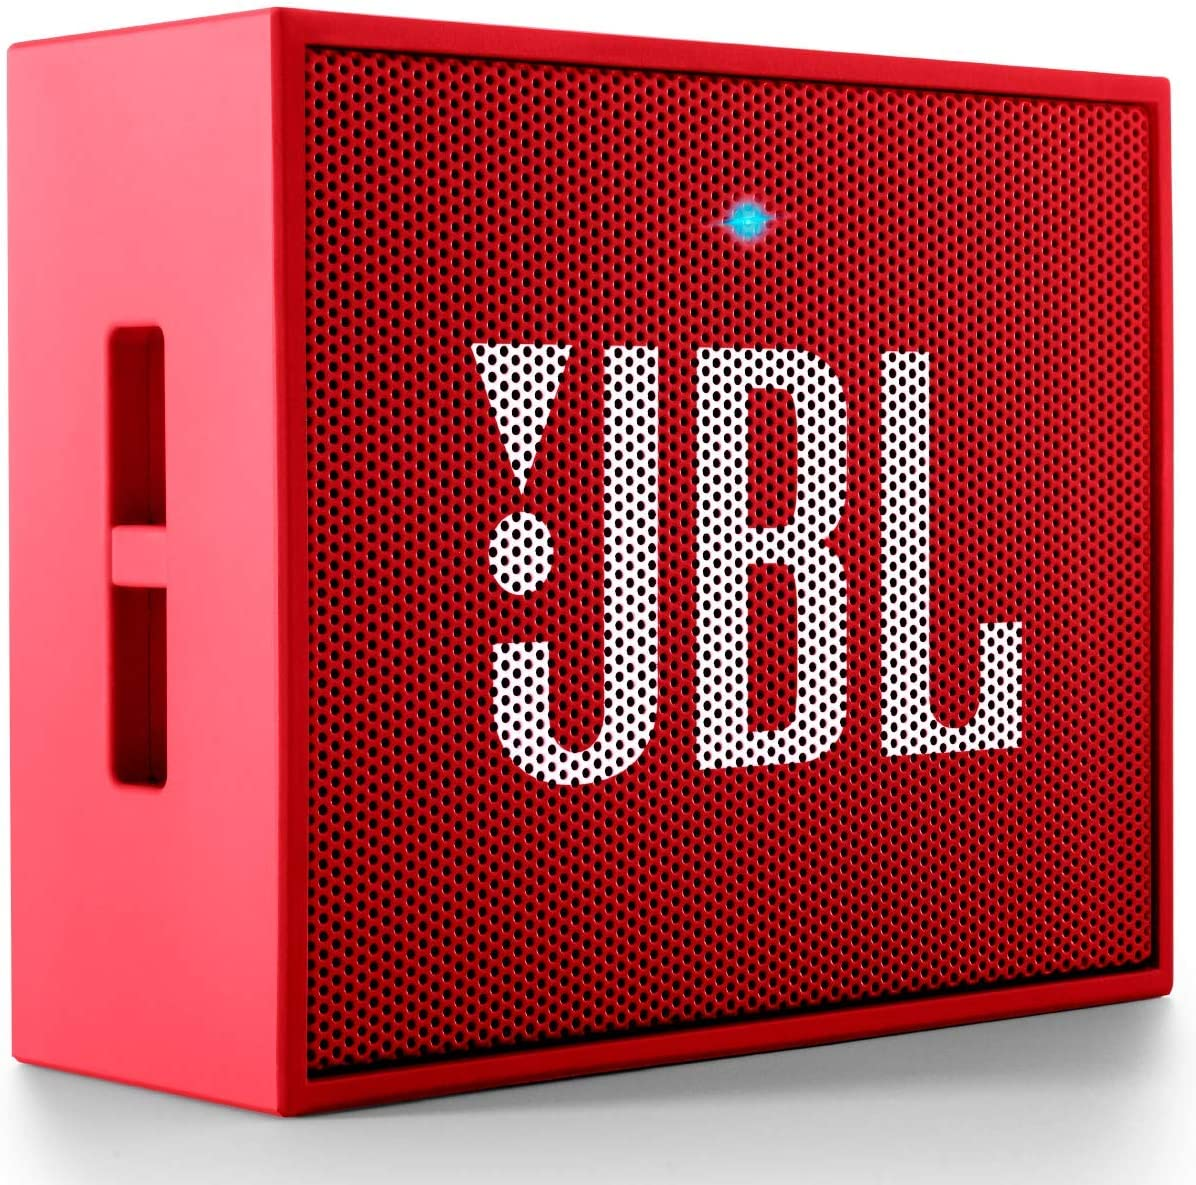 Jbl Go Plus Portable Bluetooth Speaker Red